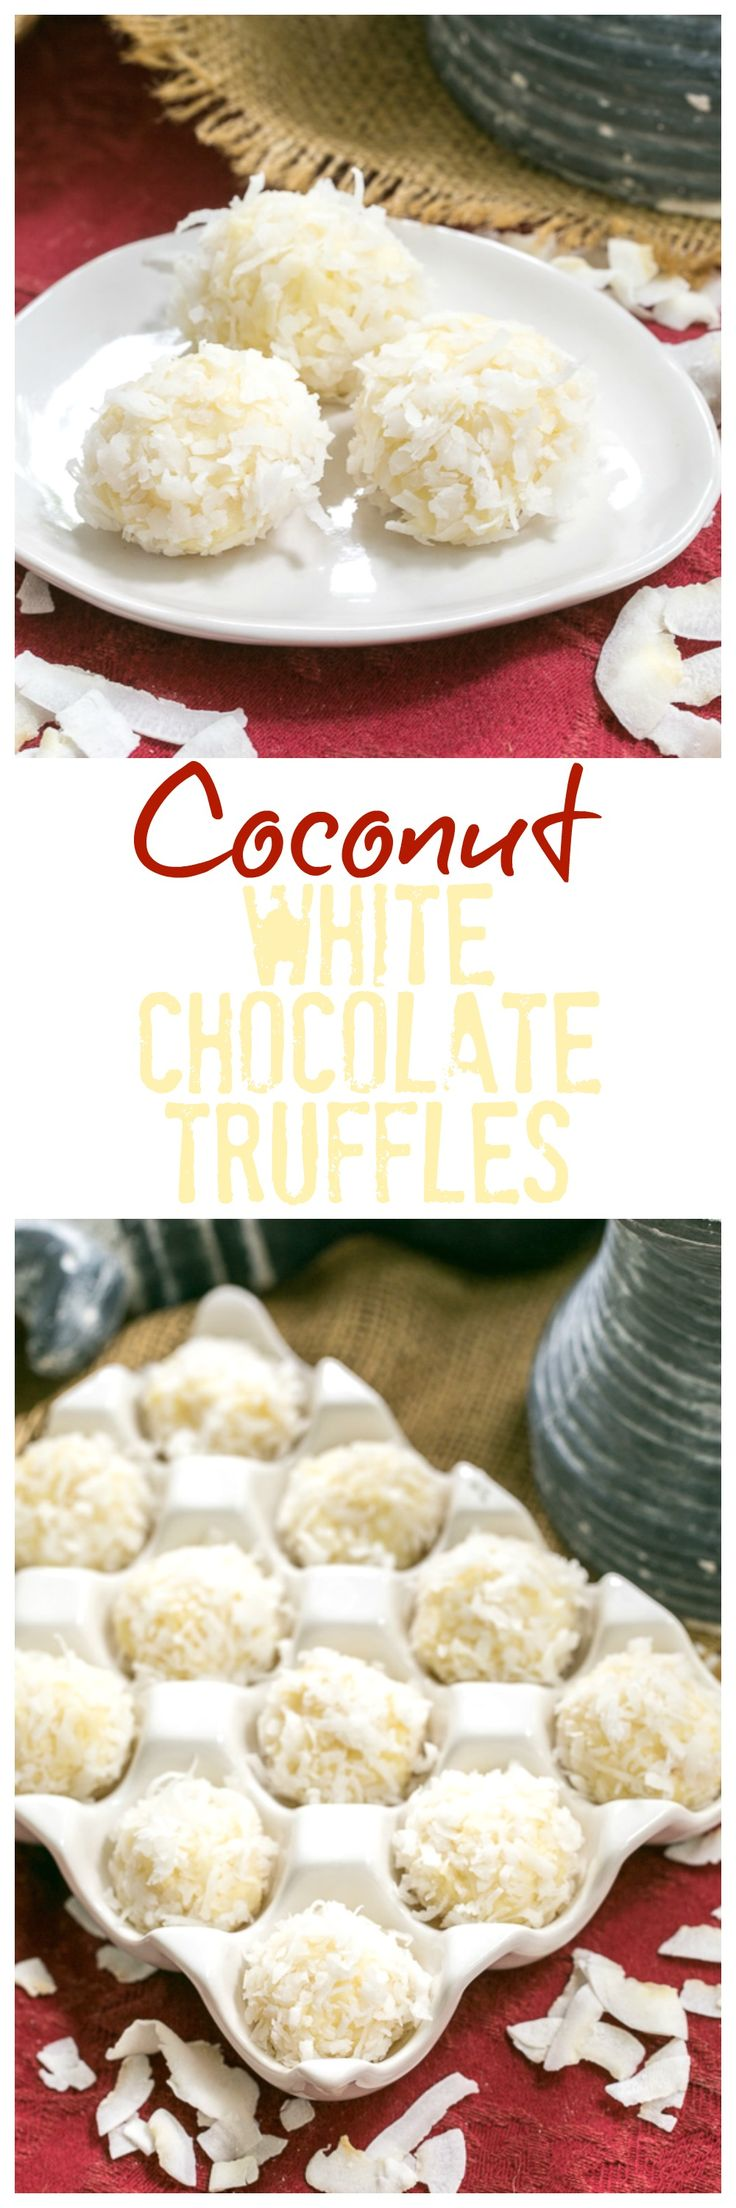 Coconut White Chocolate Truffles | An easy, decadent 4 ingredient recipe @lizzydo